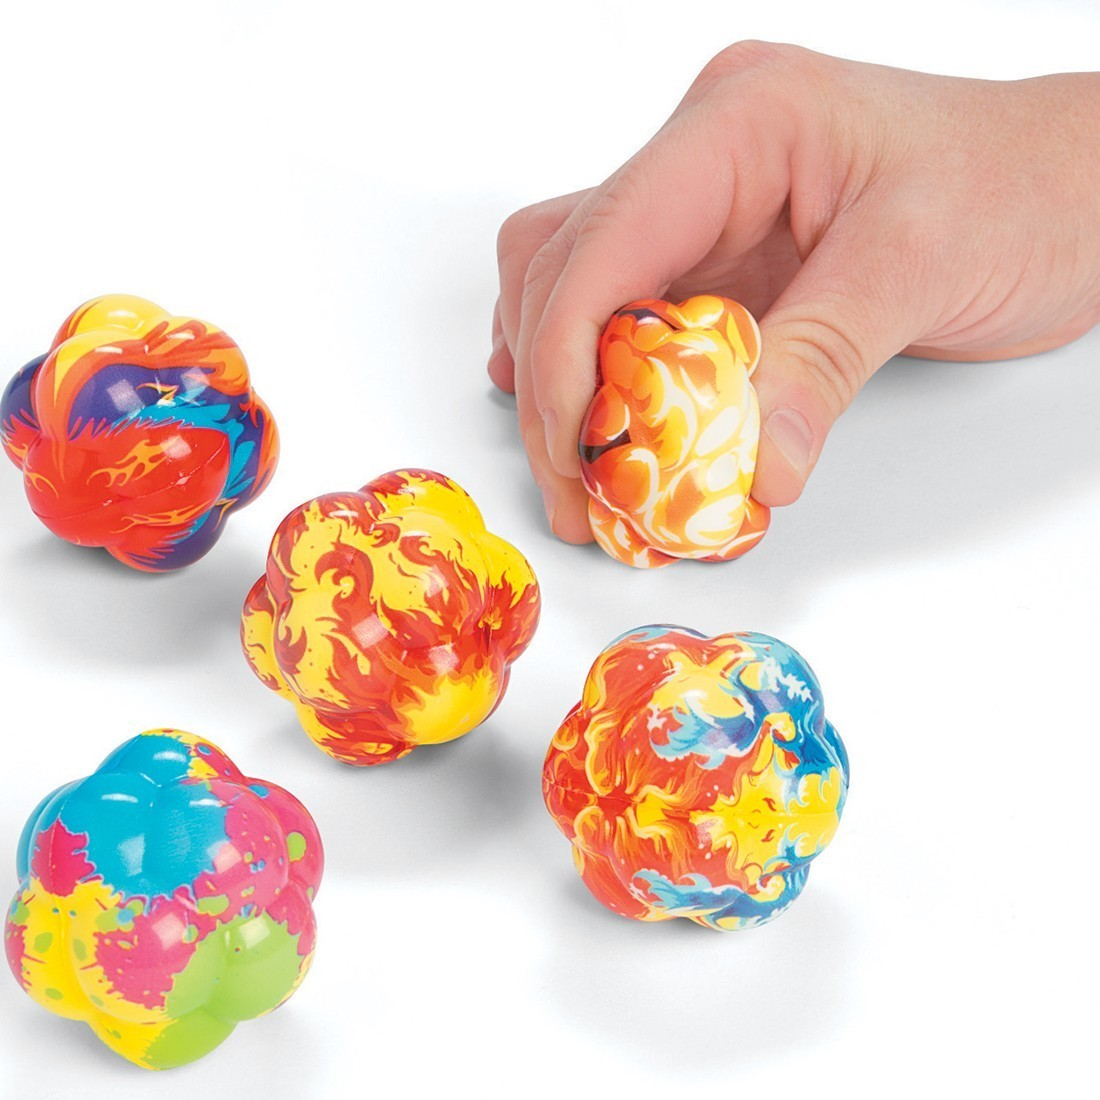 Bubbly Nuclear Stress Balls [image]